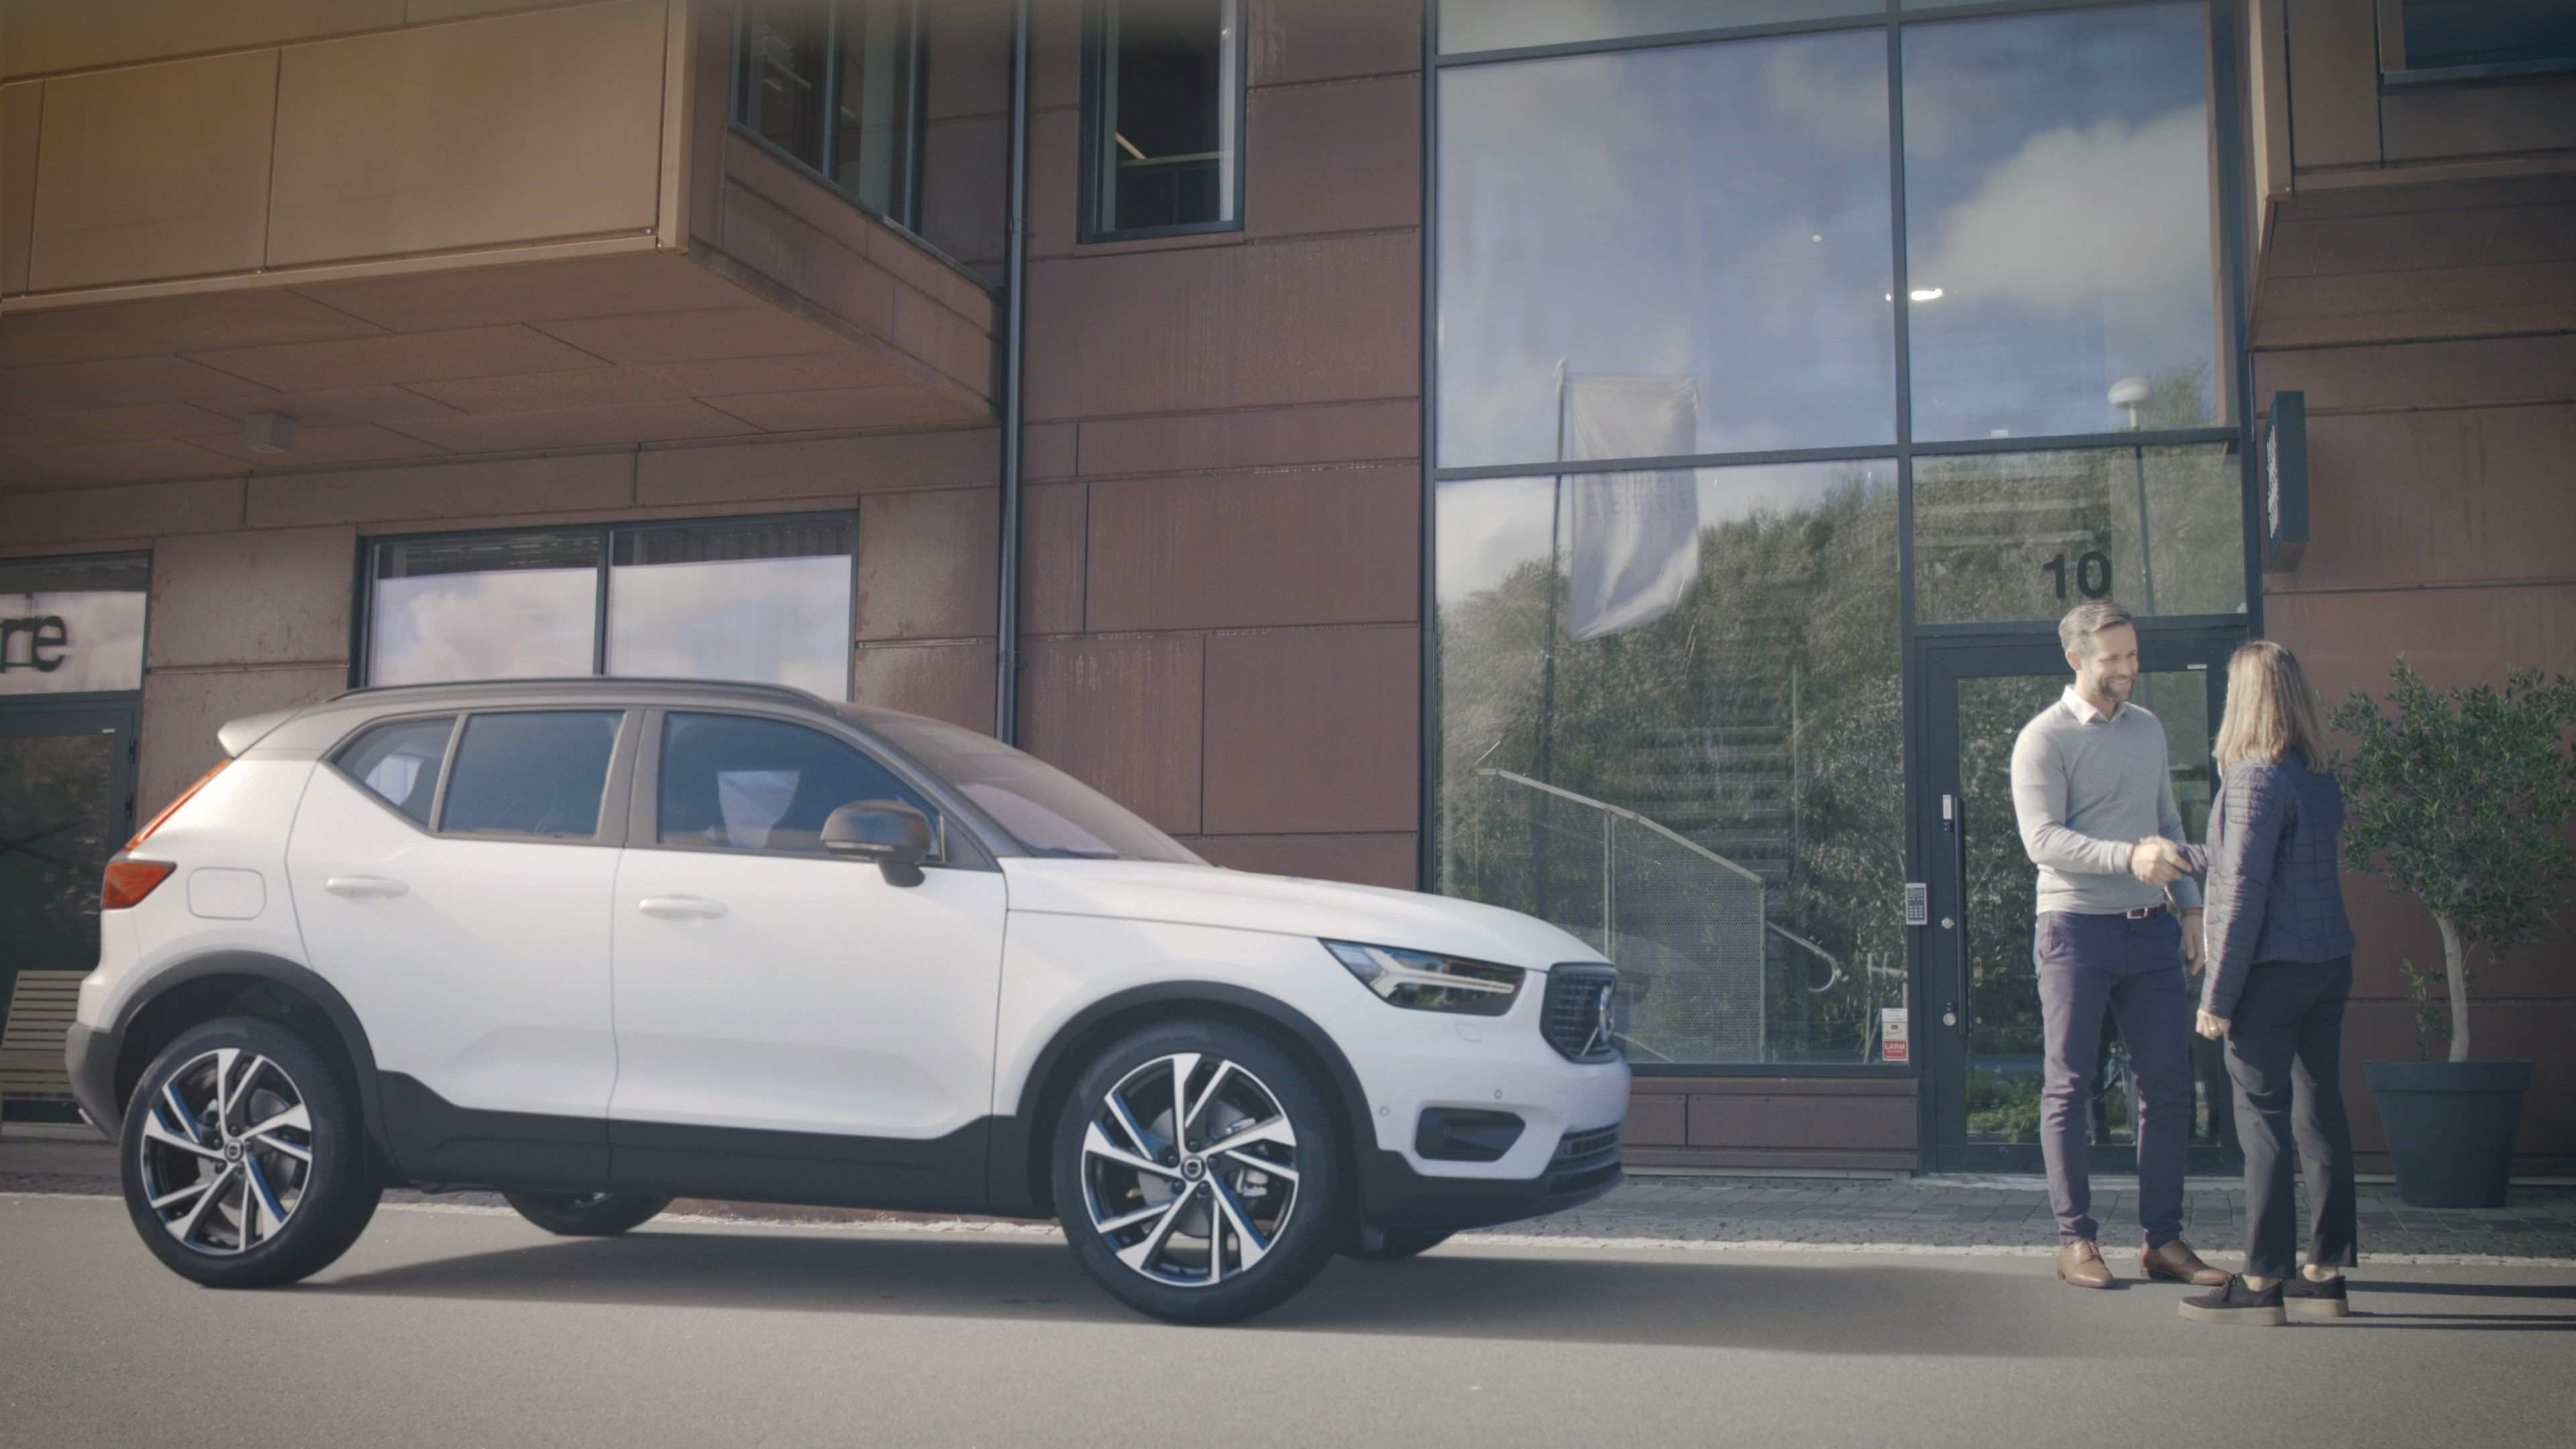 61 Gallery of Volvo Xc40 Dimensions 2019 Concept with Volvo Xc40 Dimensions 2019